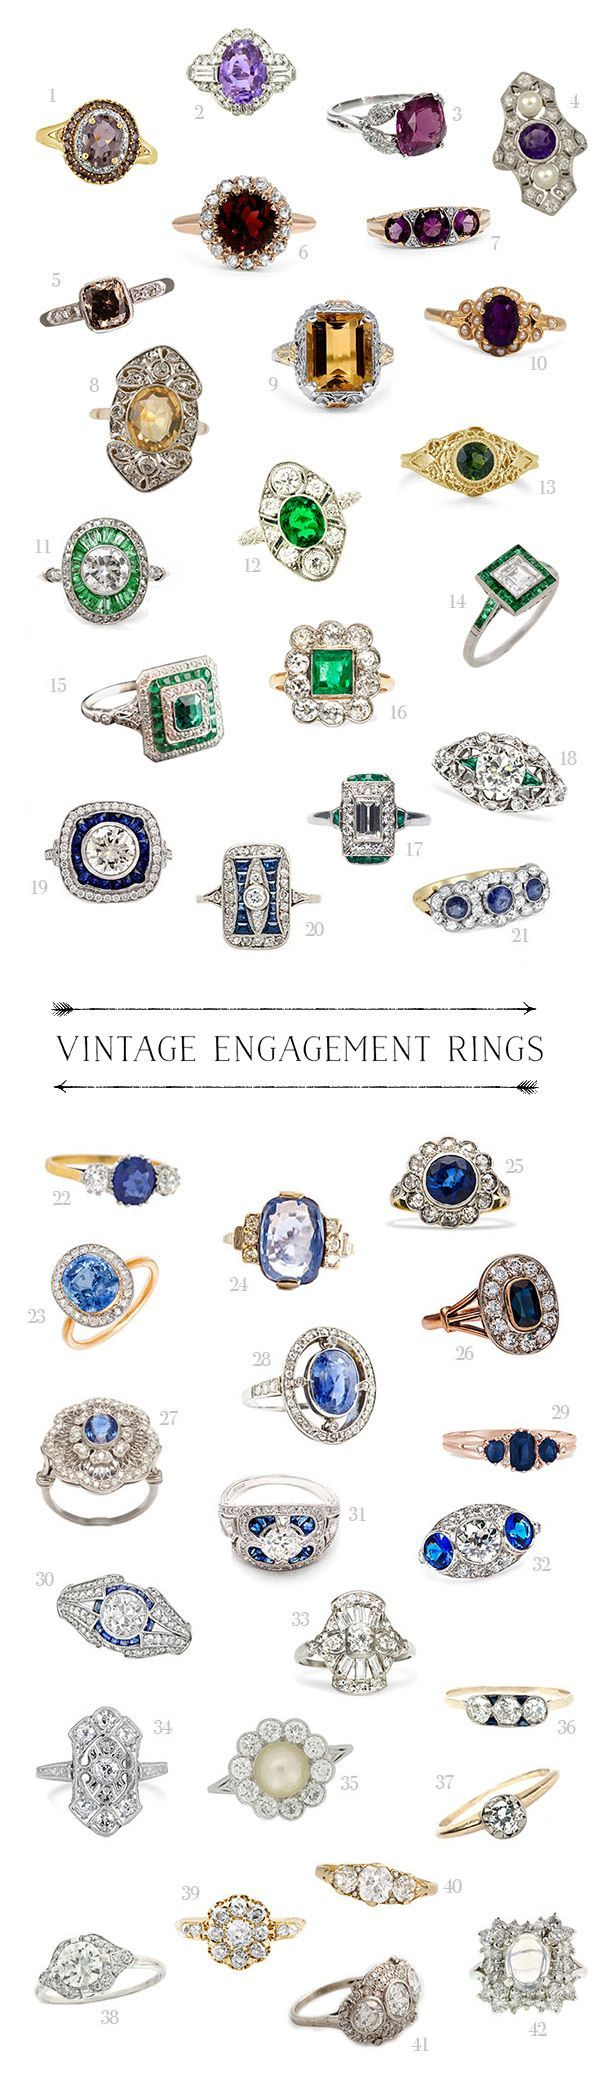 All The Vintage Enga  All The Vintage Engagement Rings!  https://www.pinterest.com/pin/245727723396611066/   Also check out: http://kombuchaguru.com